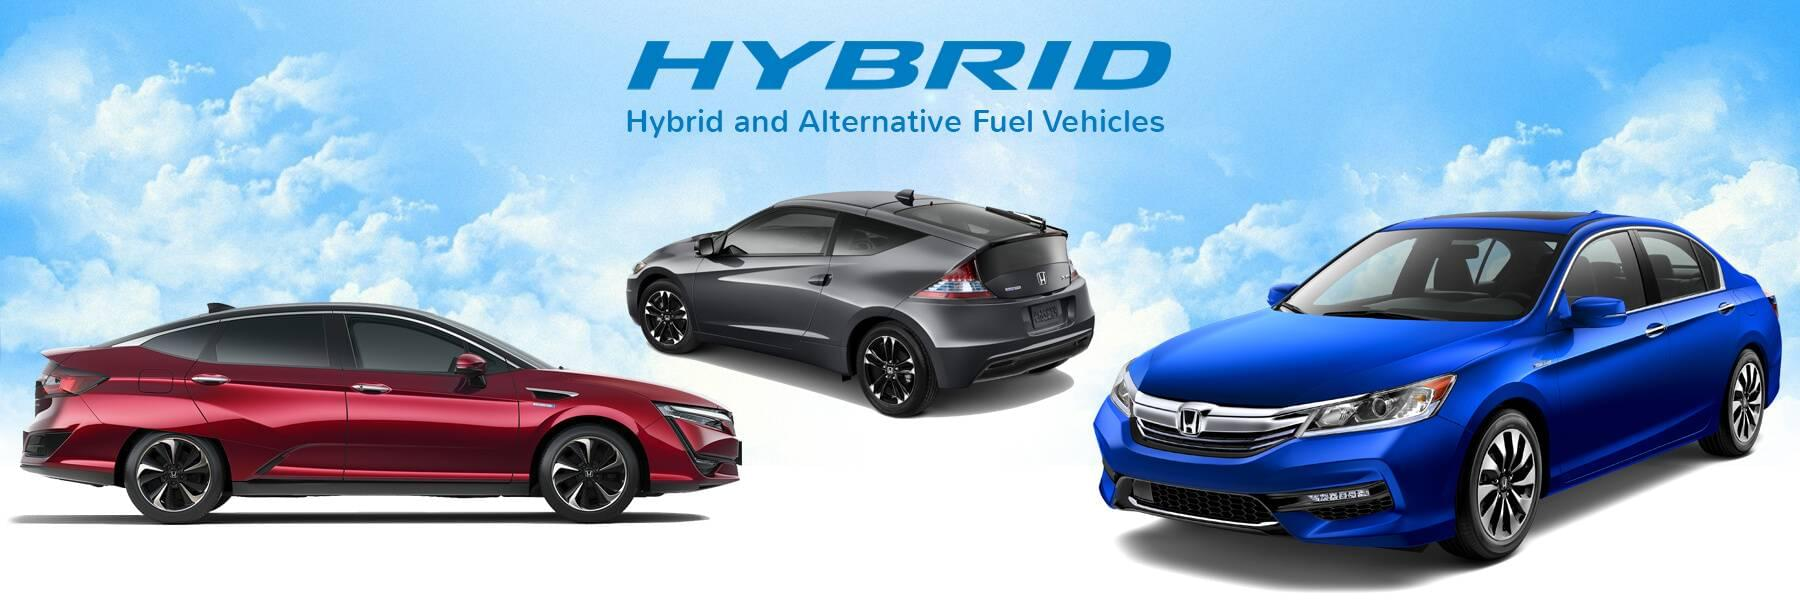 Honda Hybrid Vehicles